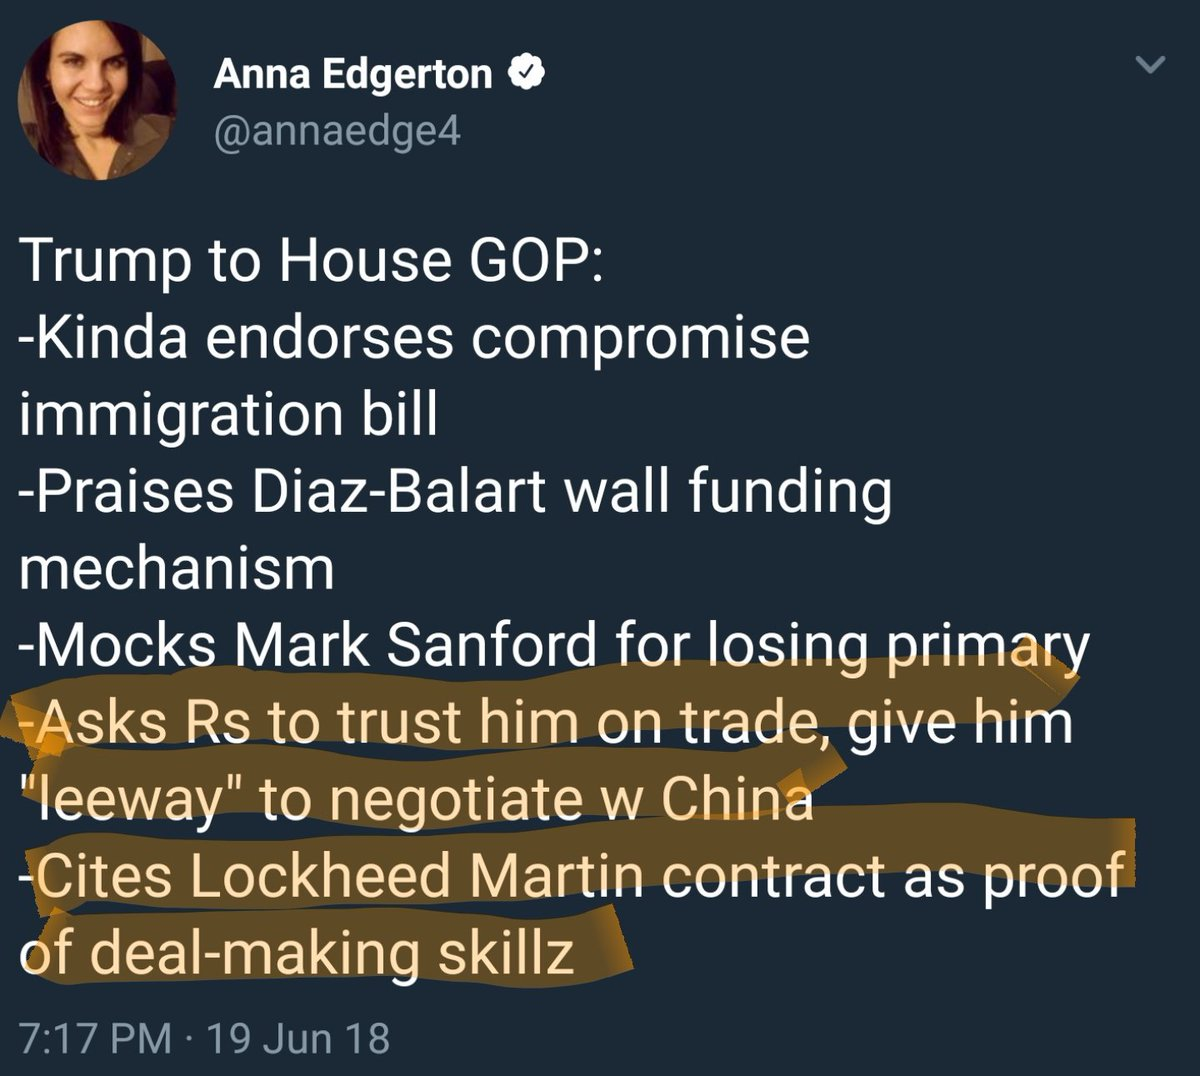 Trump reportedly cites Lockheed Martin deal as key example when asking for leeway from House GOP on China trade negotiations. Washington Post gave the Lockheed cost cutting deal claim 4 Pinnocchios h/t @annaedge4 https://t.co/Sf8kNbPwHK